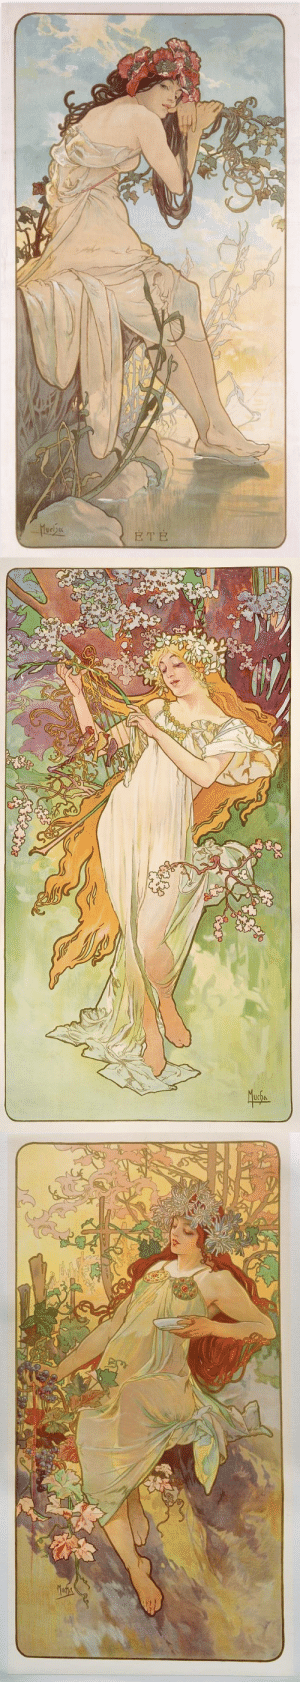 prairieantics:  The Seasons by Alphonse Mucha: prairieantics:  The Seasons by Alphonse Mucha